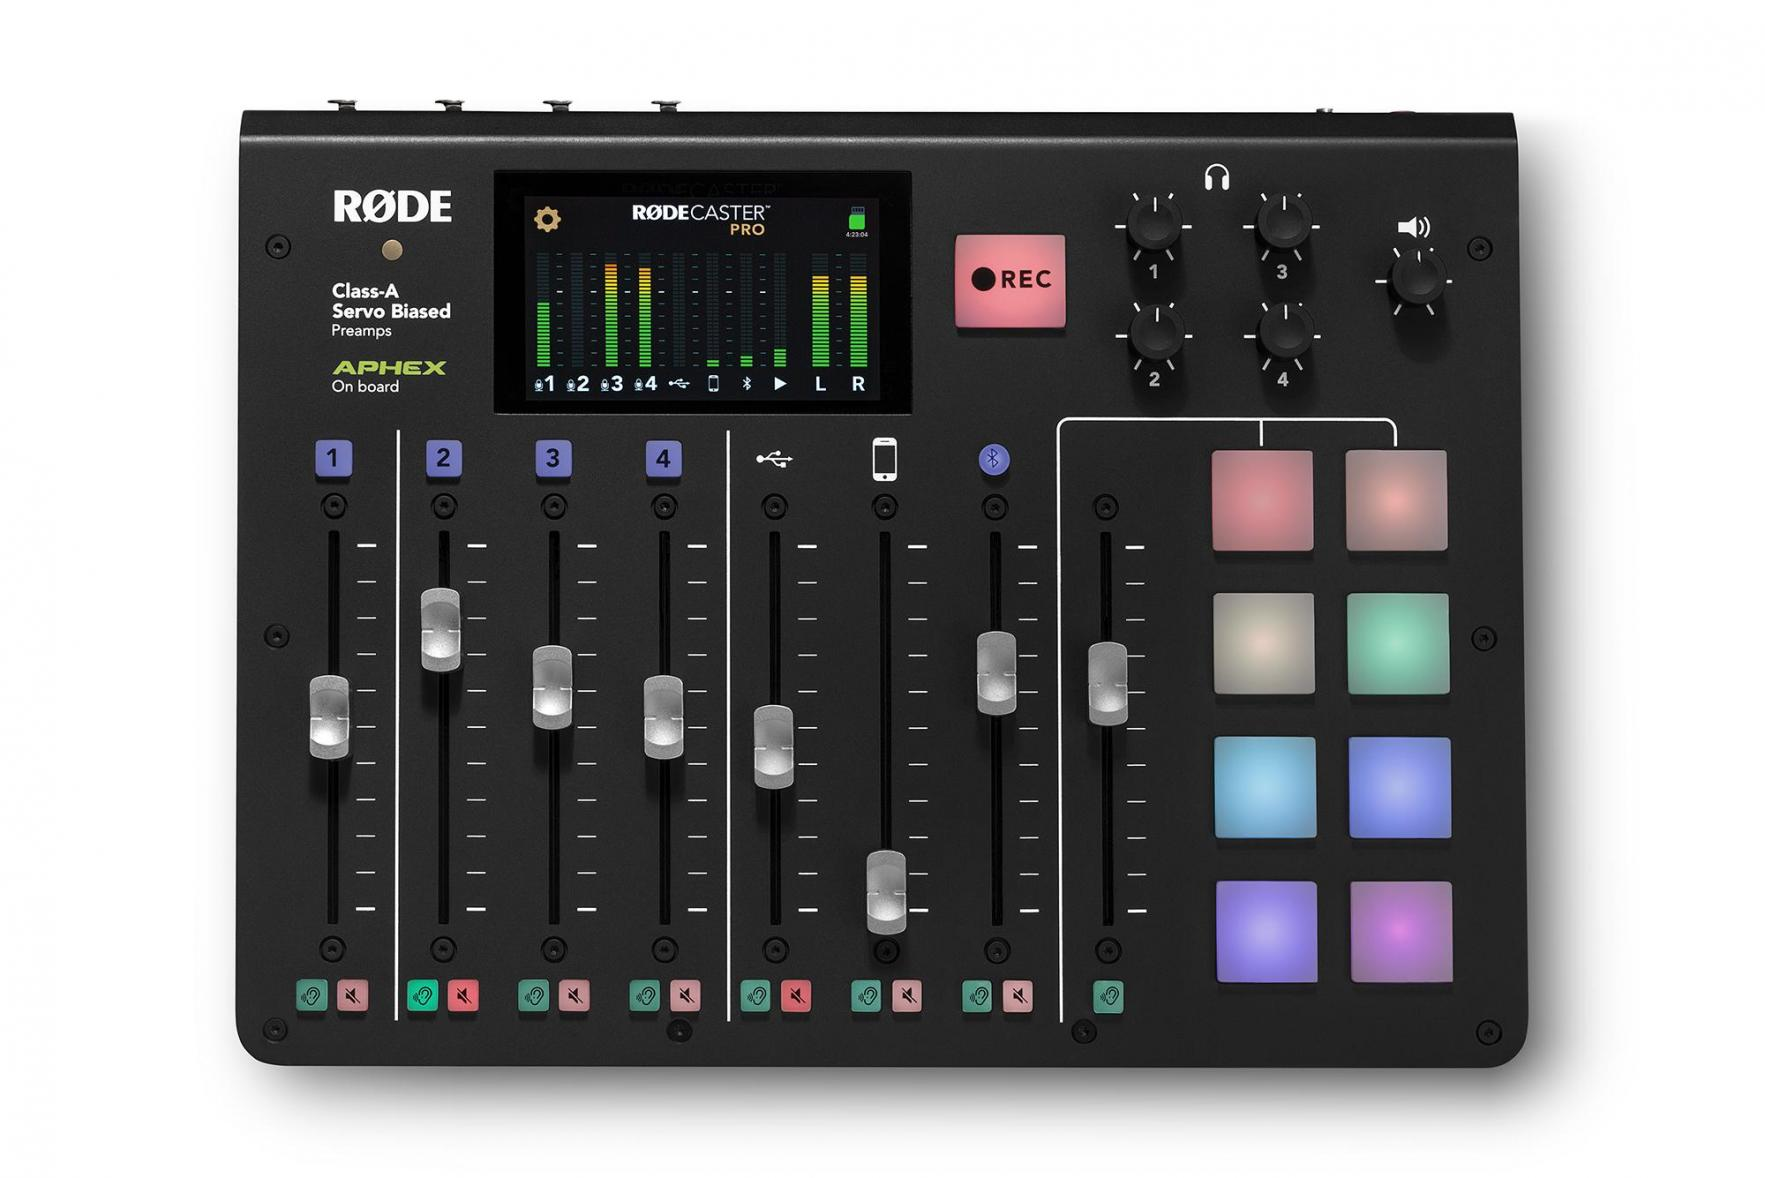 Rode: RODECaster Pro - All-in-one production console for podcasts